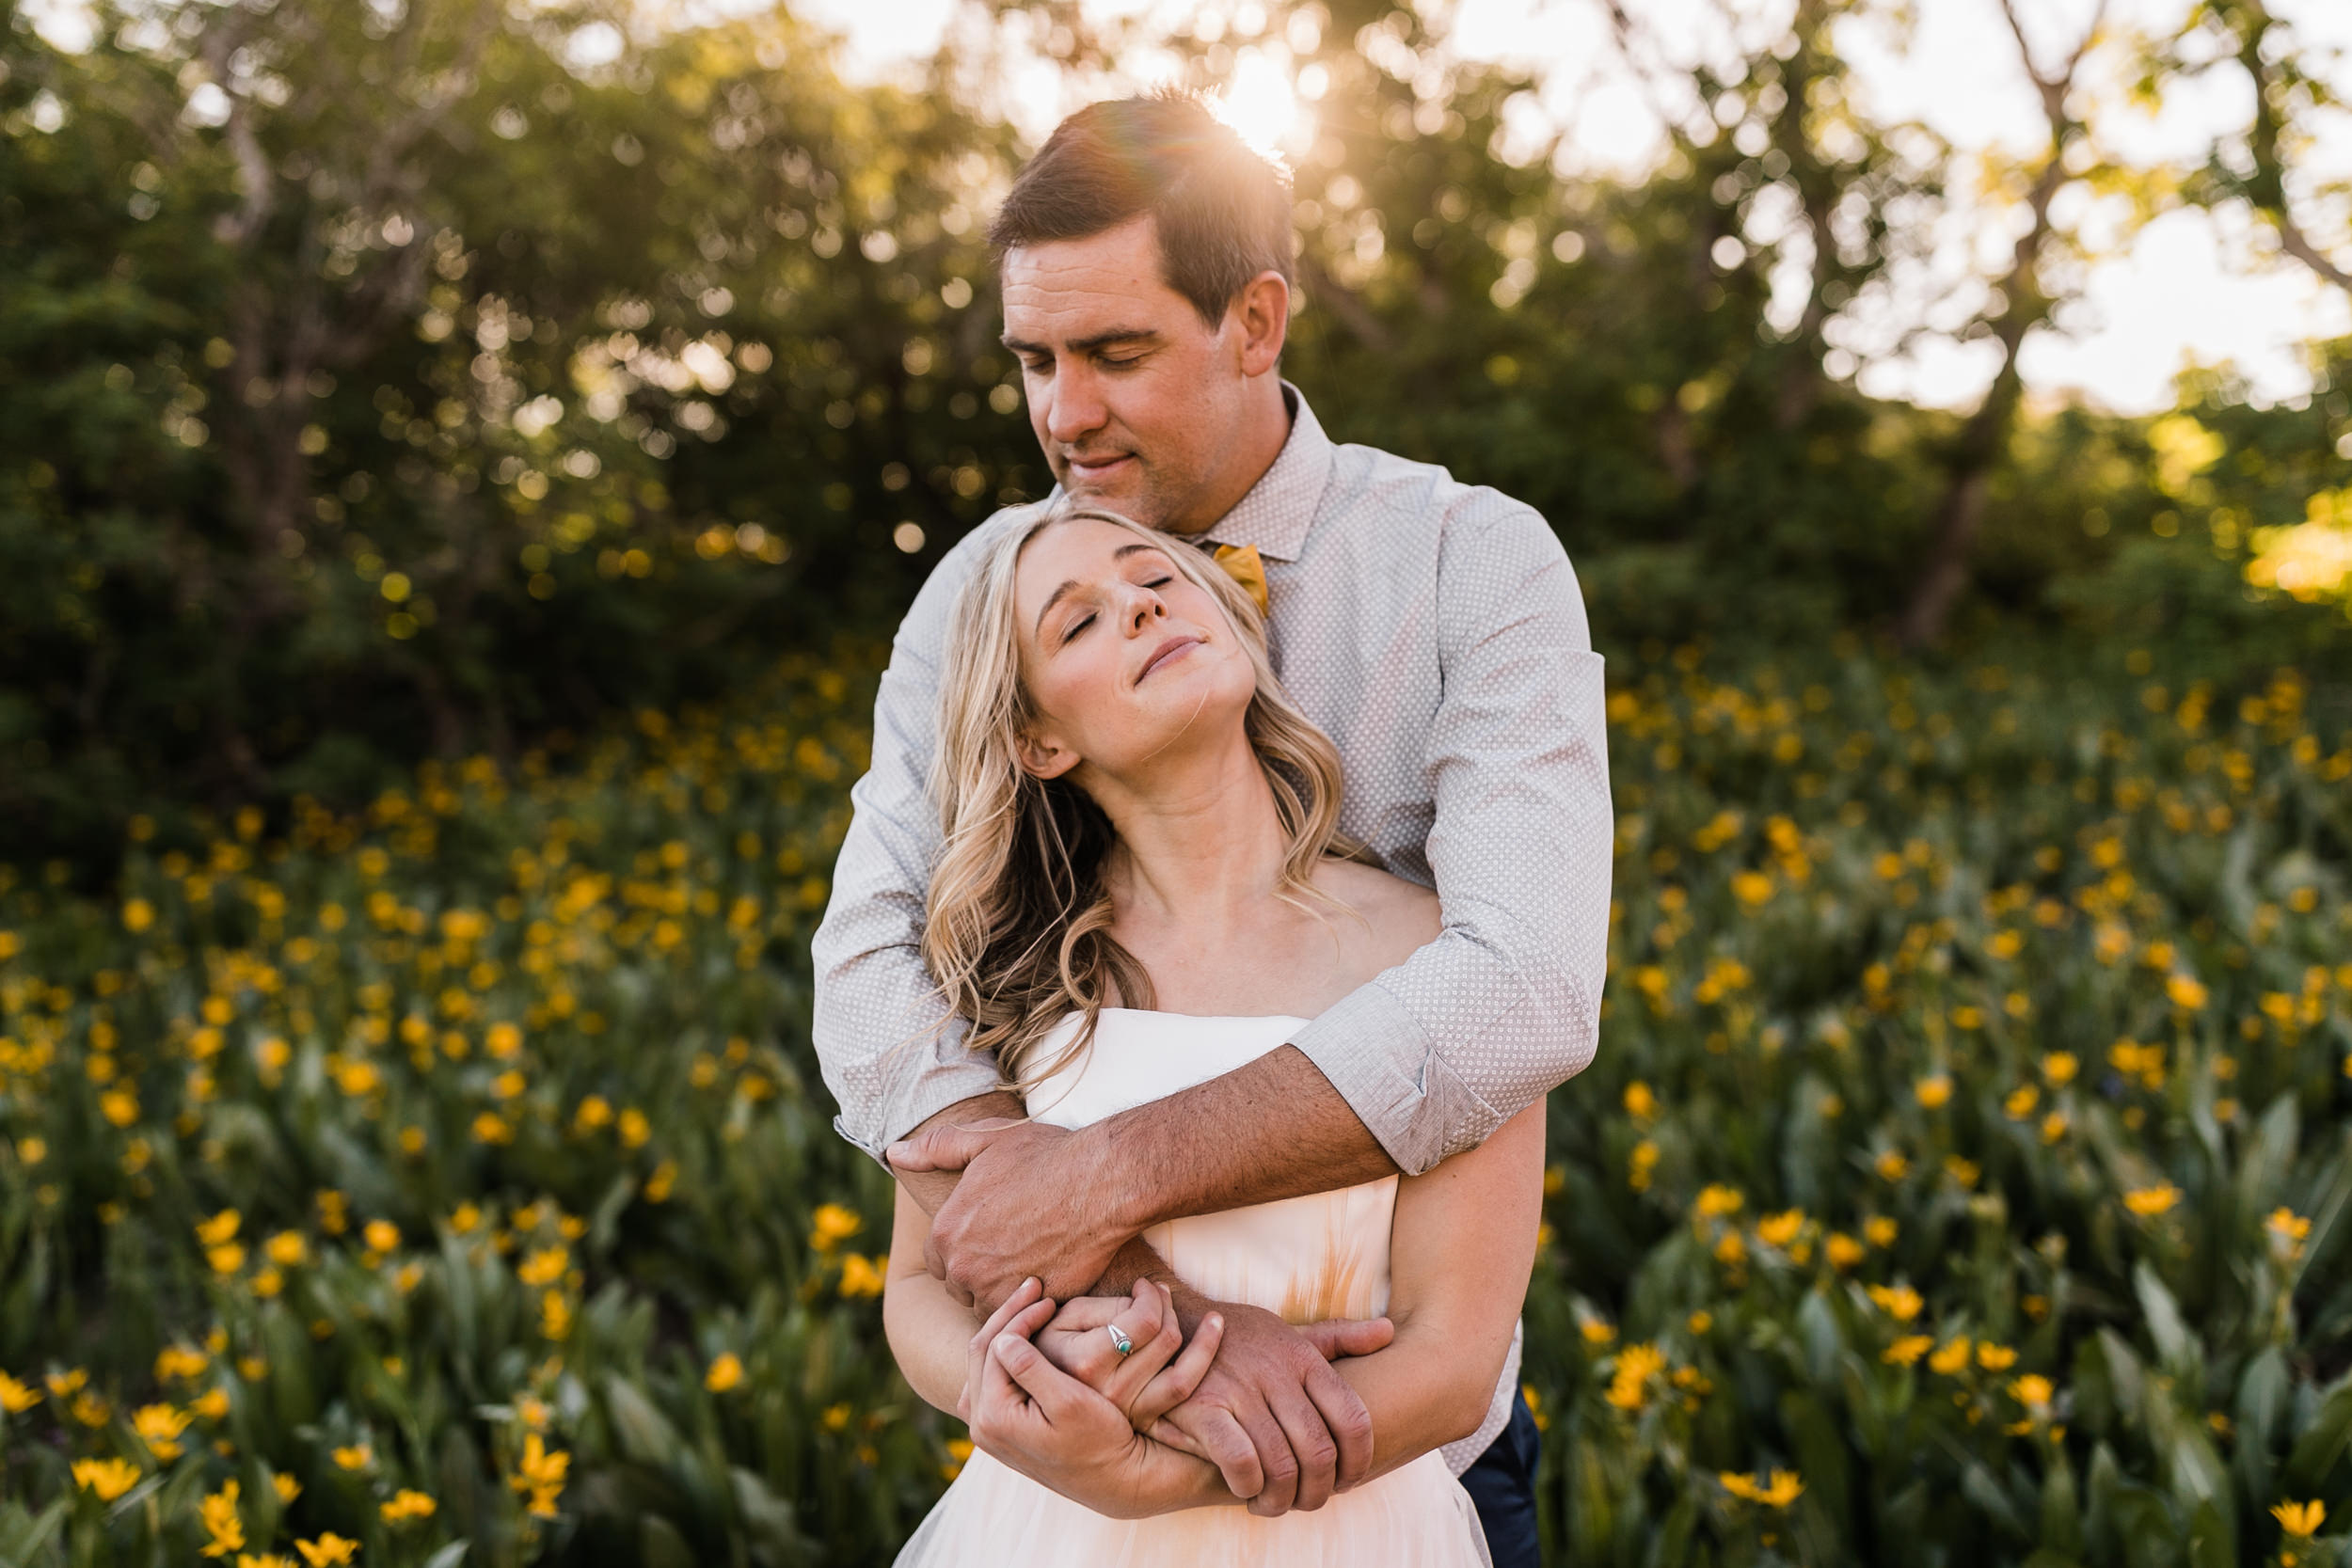 Adventurous Helicopter Elopement Bridal Portraits with Caroline Gleich and Rob Lea in the Wasatch Mountains near Salt Lake City, Utah